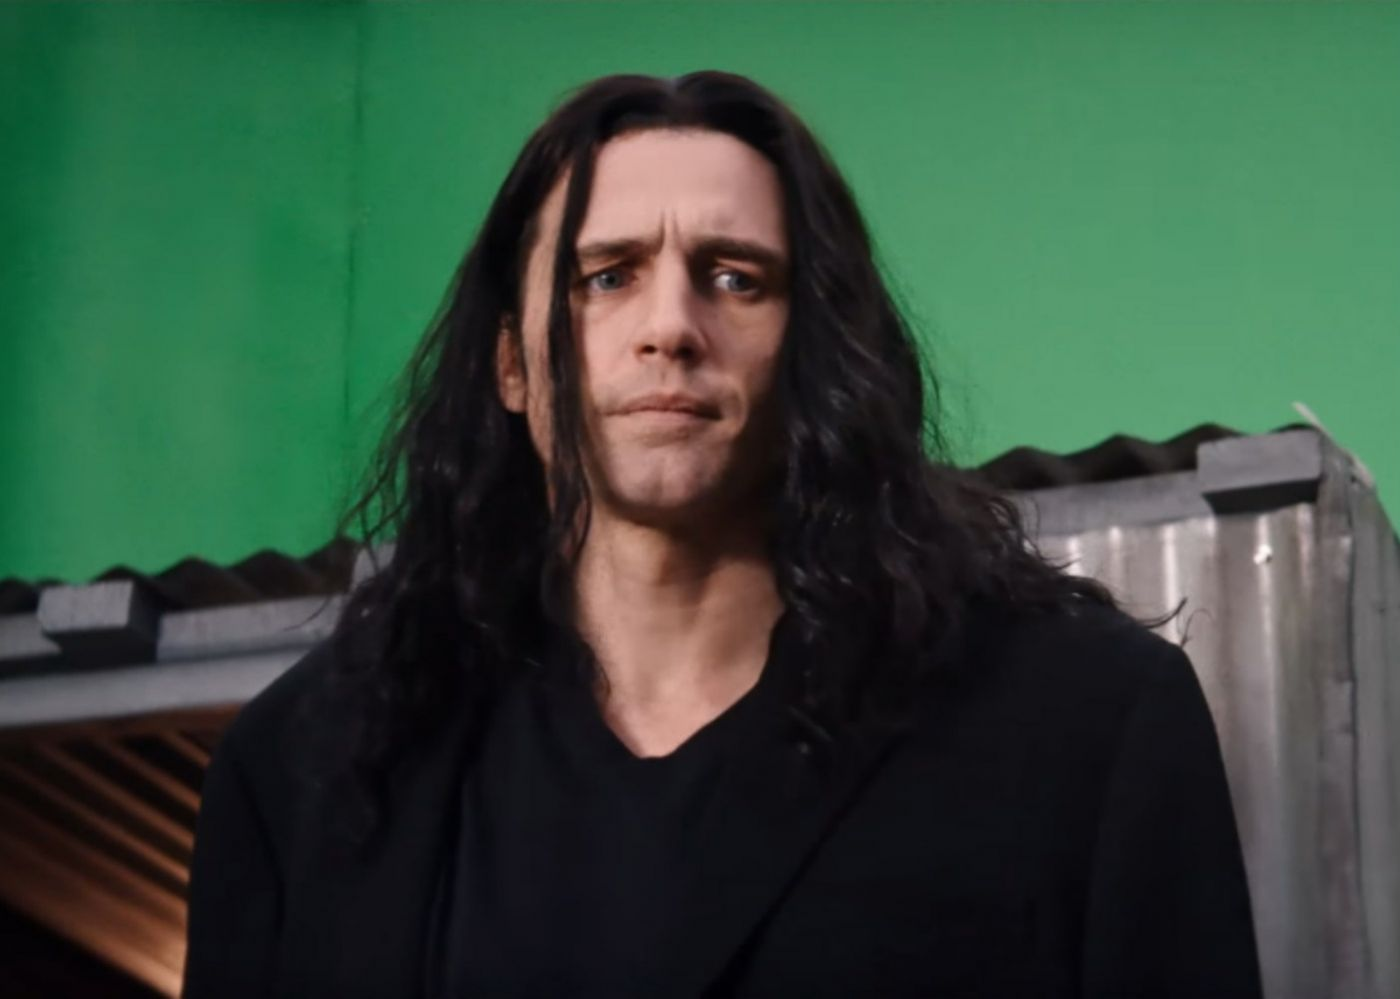 Debut 'The Disaster Artist' Trailer Plays Directly to Fans